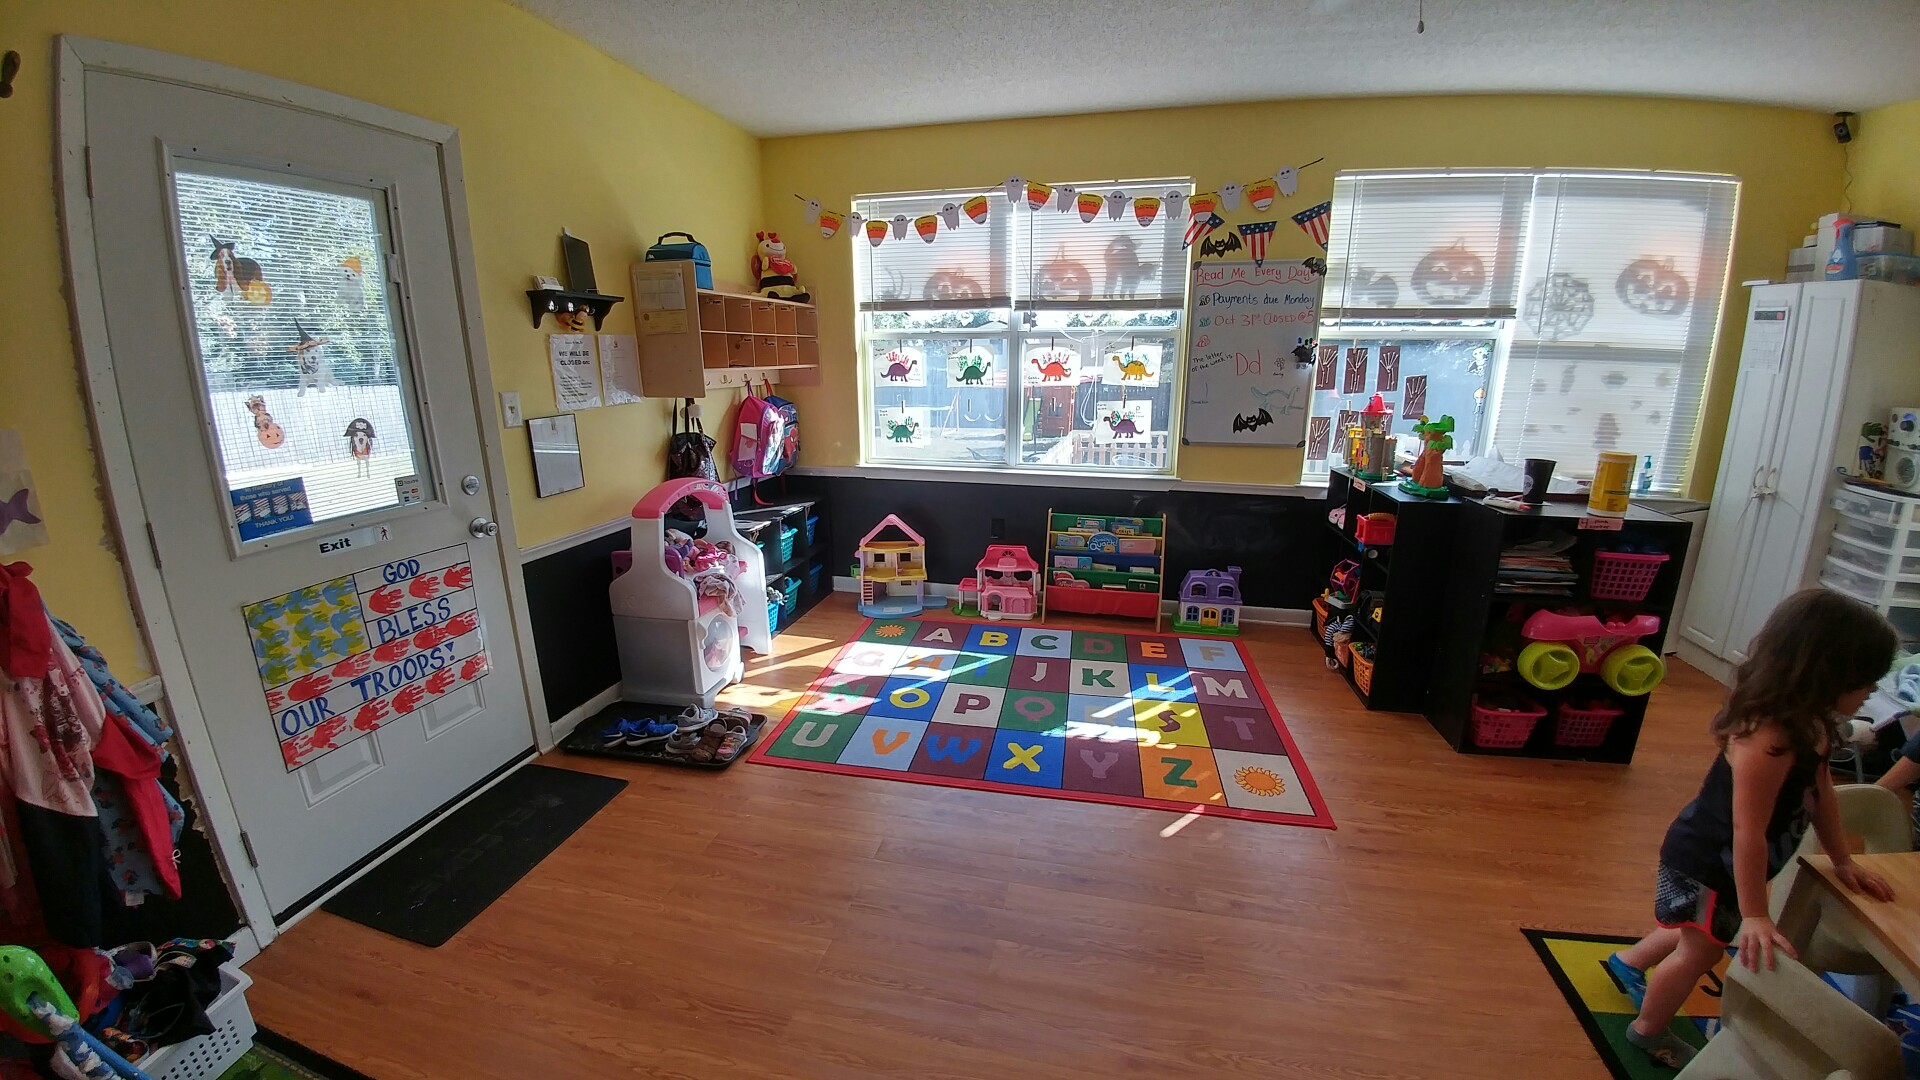 Bee Happy Williams Home Daycare 605 Moss Dr Crestview Fl 32536